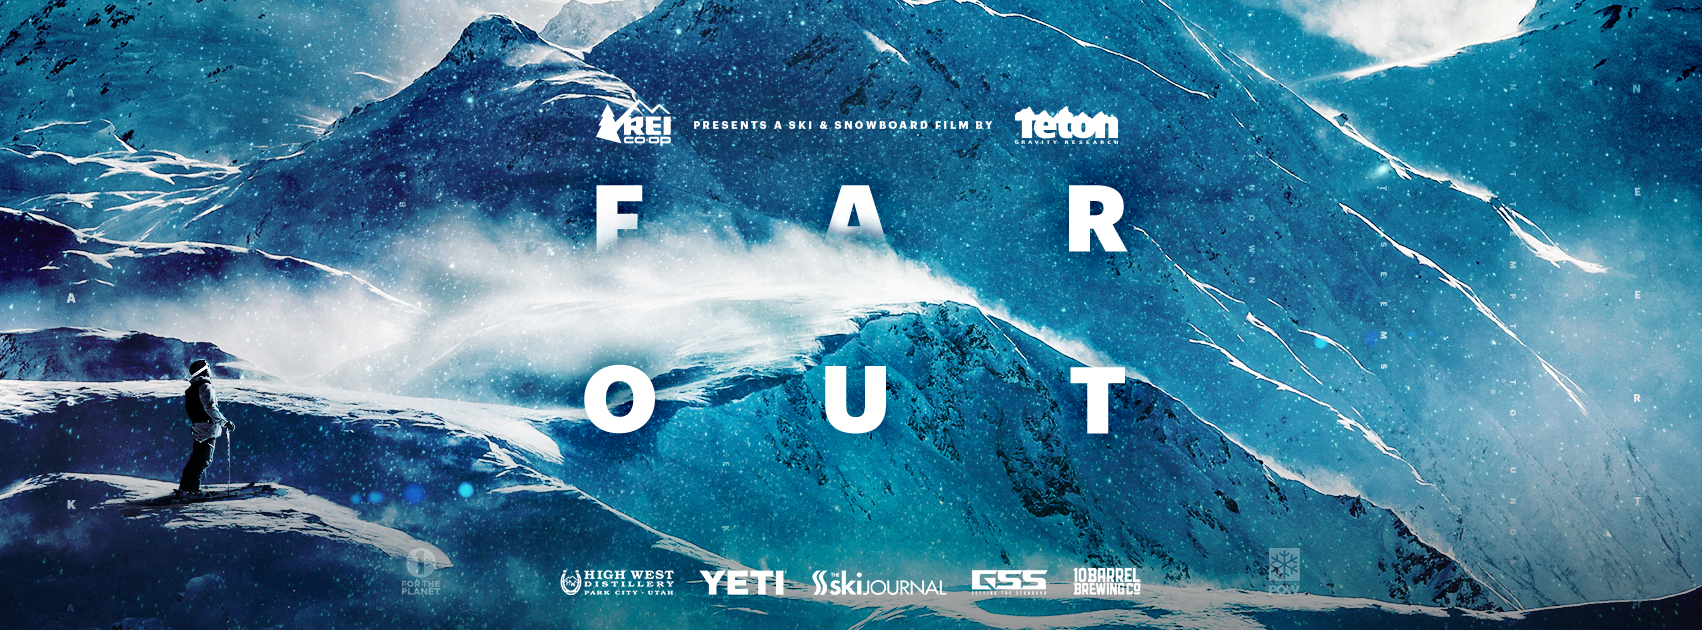 Far Out – a ski film by Teton Gravity Research